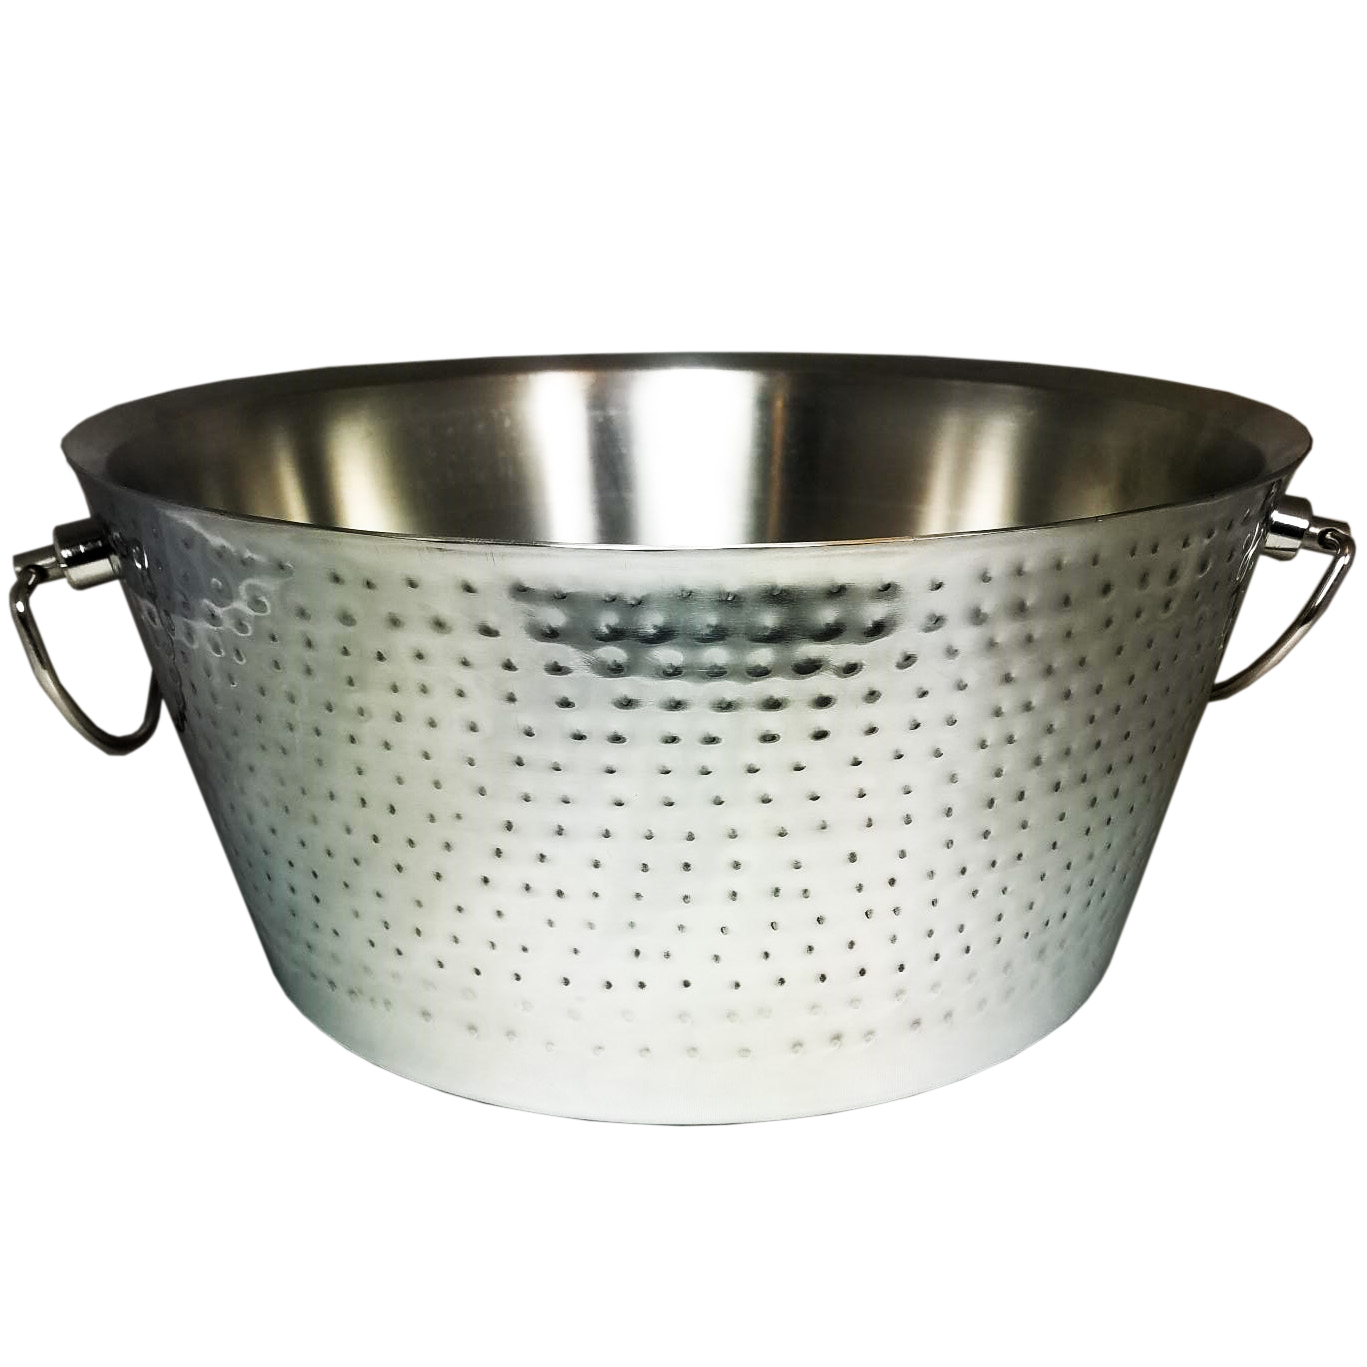 BREKX Double-Walled Hammered Stainless Steel Party Beverage Tub & Wine Chiller